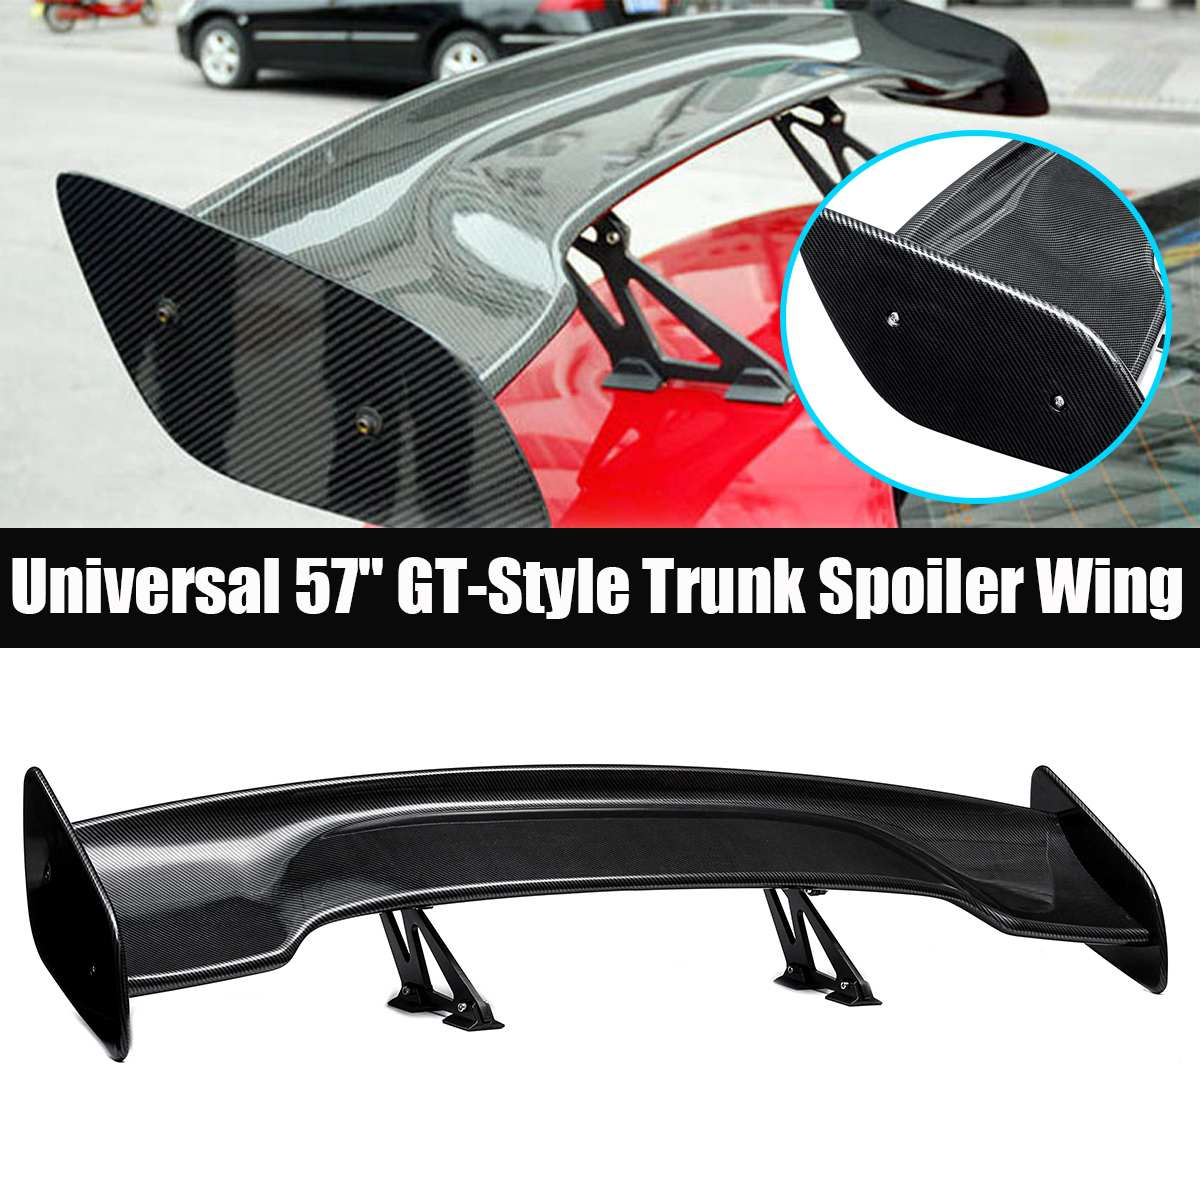 Universal Car Tail Rear Trunk <font><b>Spoiler</b></font> 145cm Carbon Fiber Style <font><b>GT</b></font> Wing for <font><b>BMW</b></font> for Mazda for Hyundai for Audi Car styling image